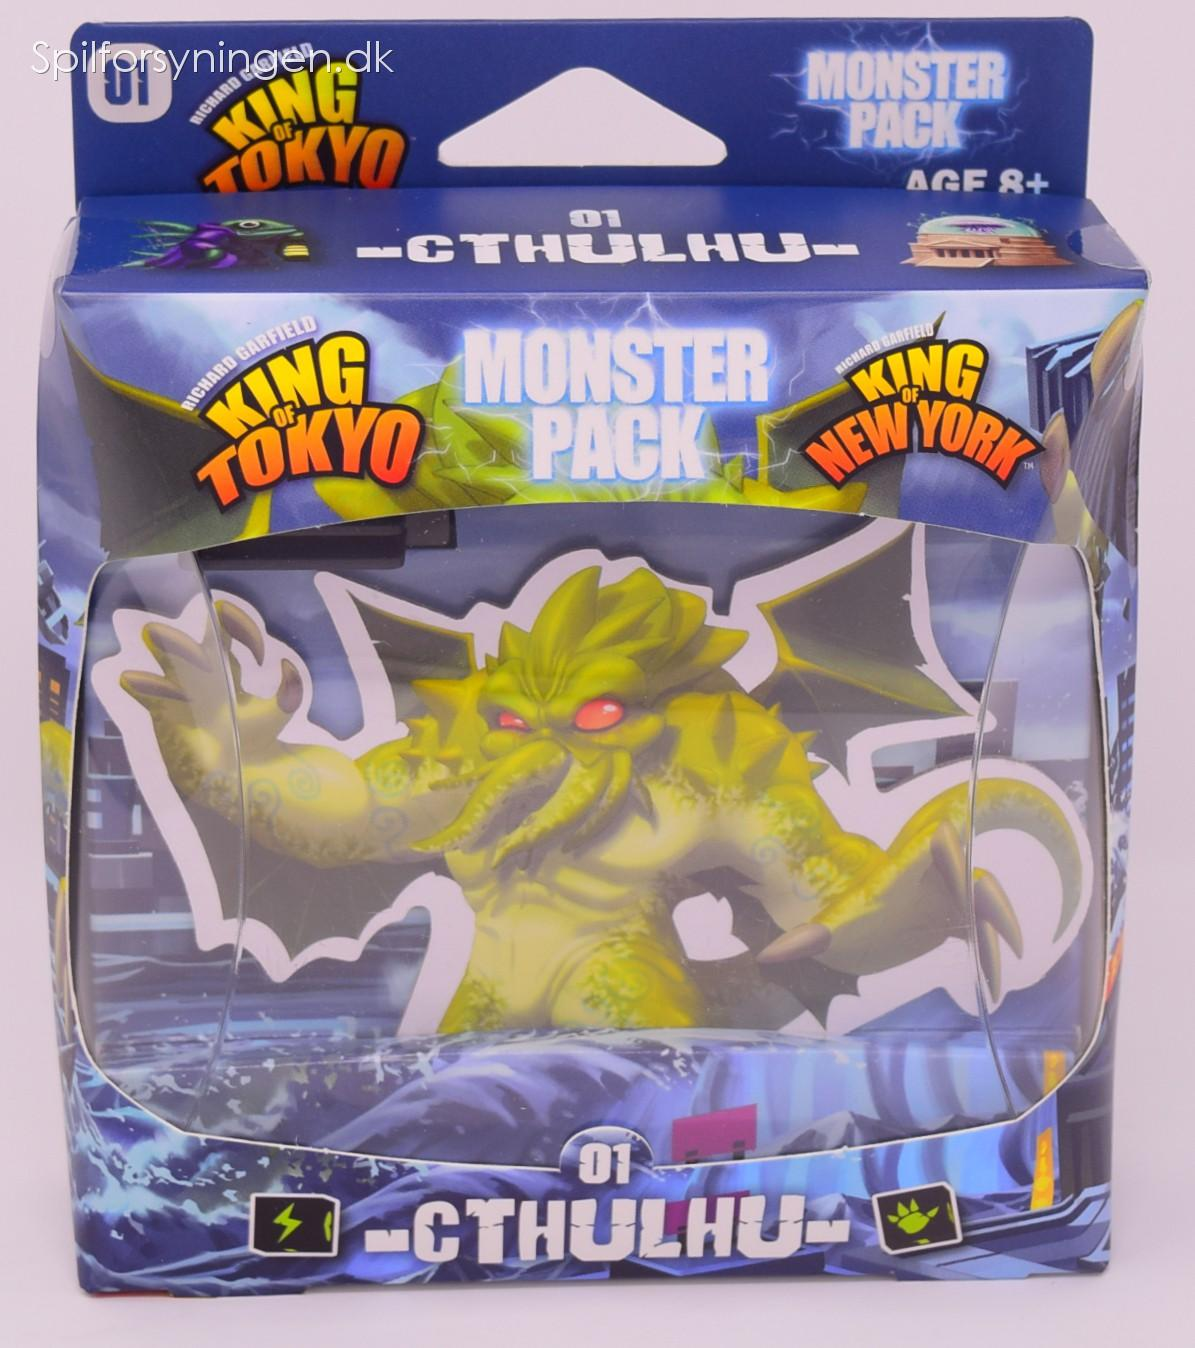 King of Tokyo: Monster Pack – Cthulhu (Exp) (Eng)